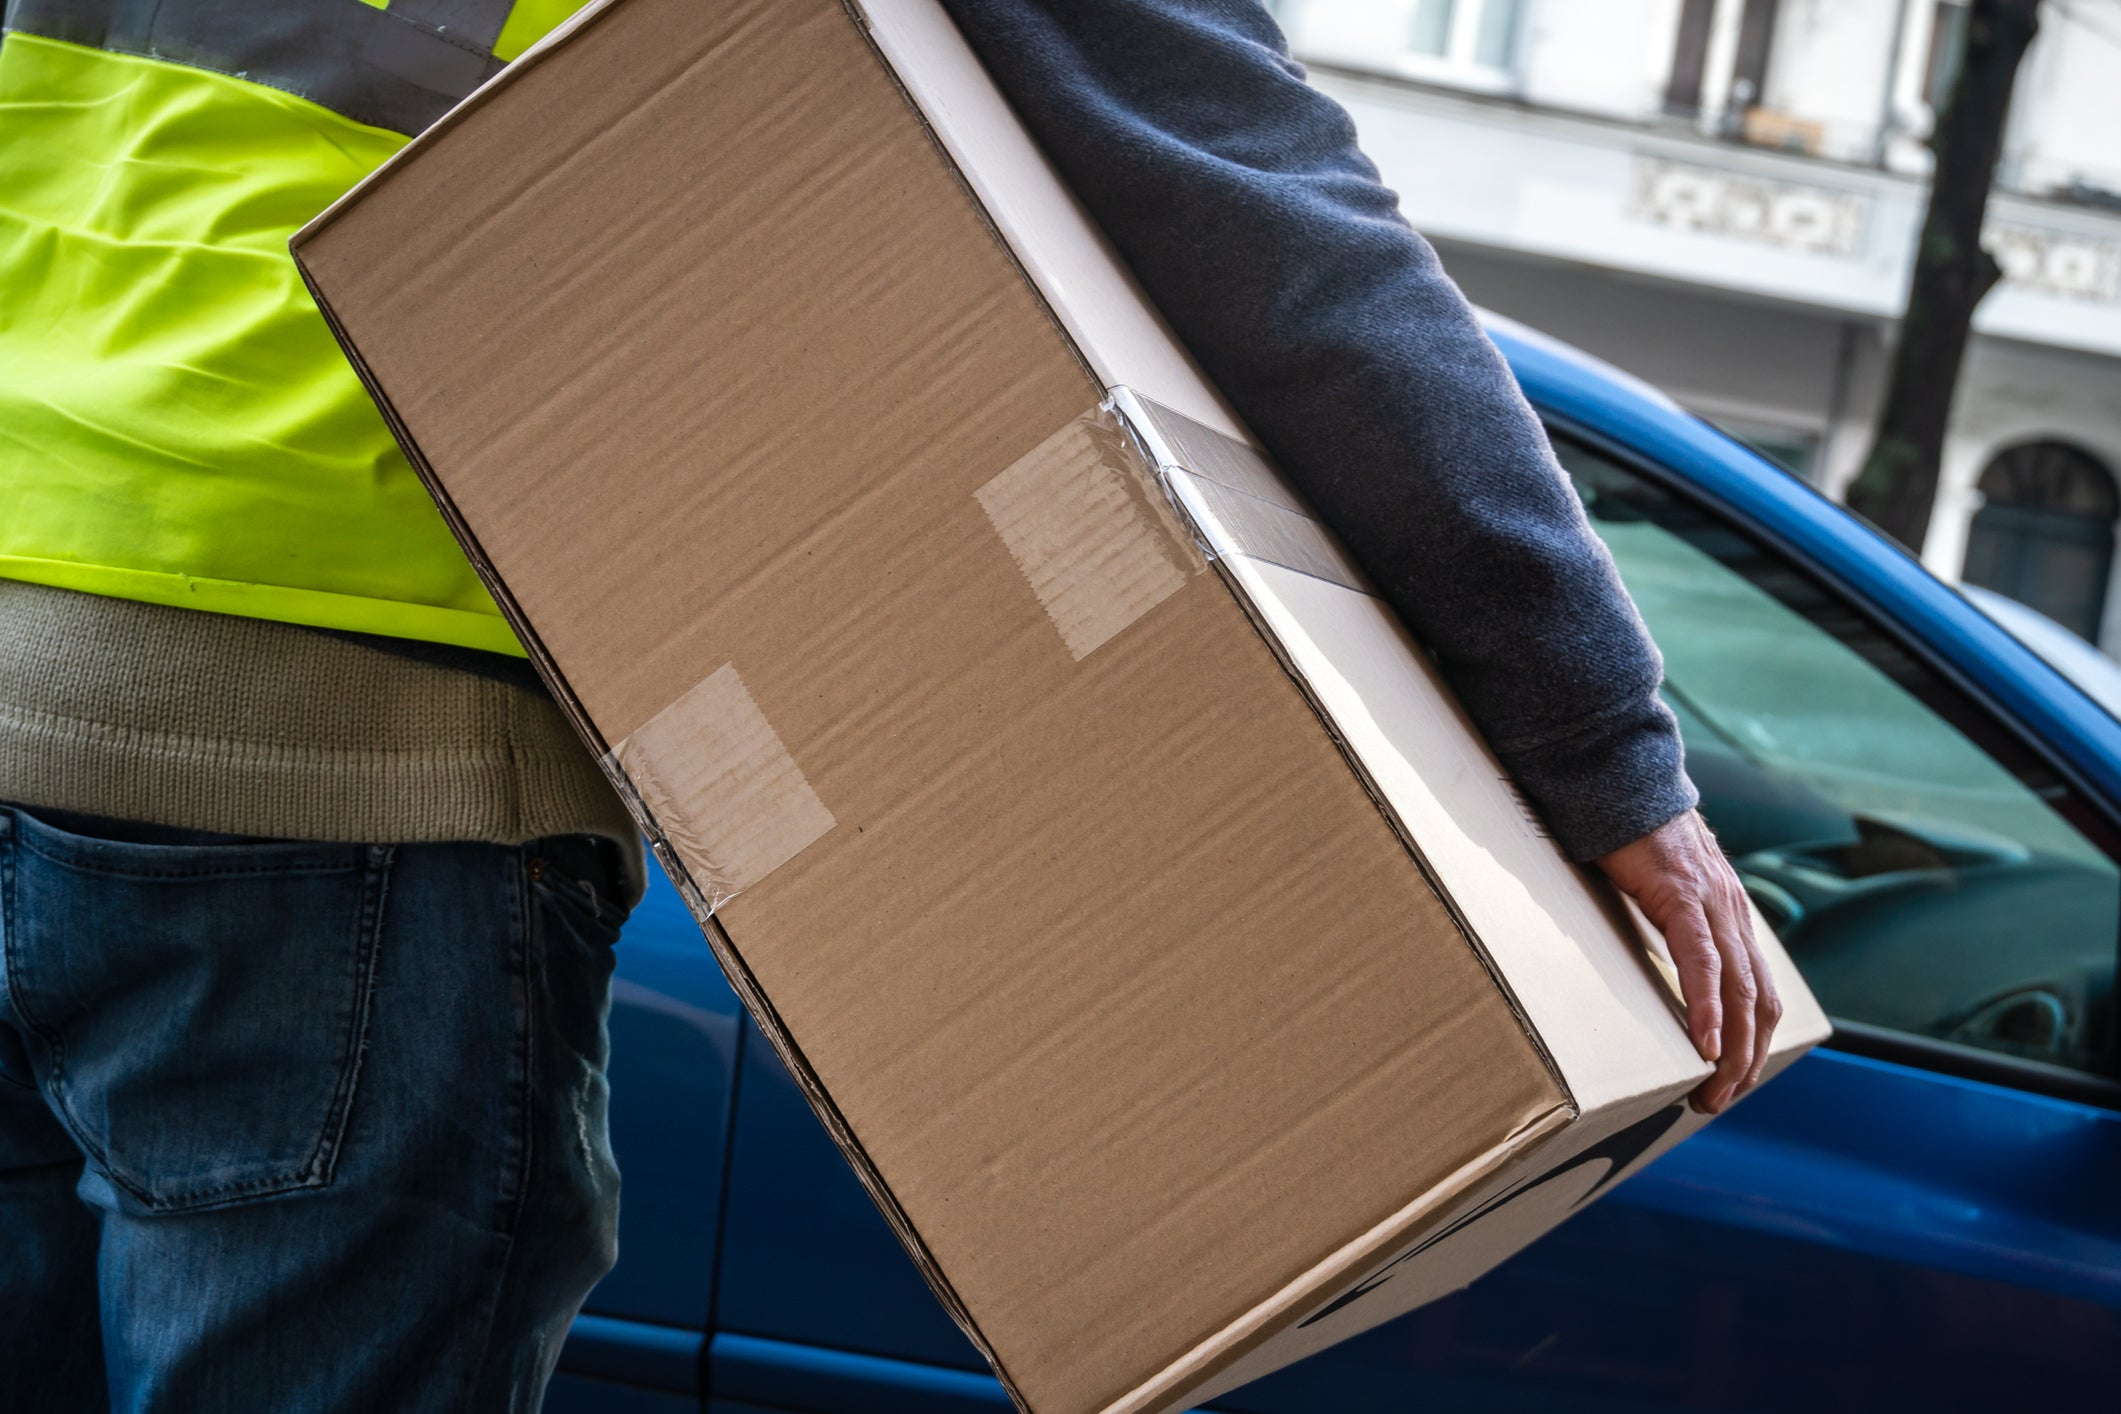 How to File an Amazon Stolen Package Claim